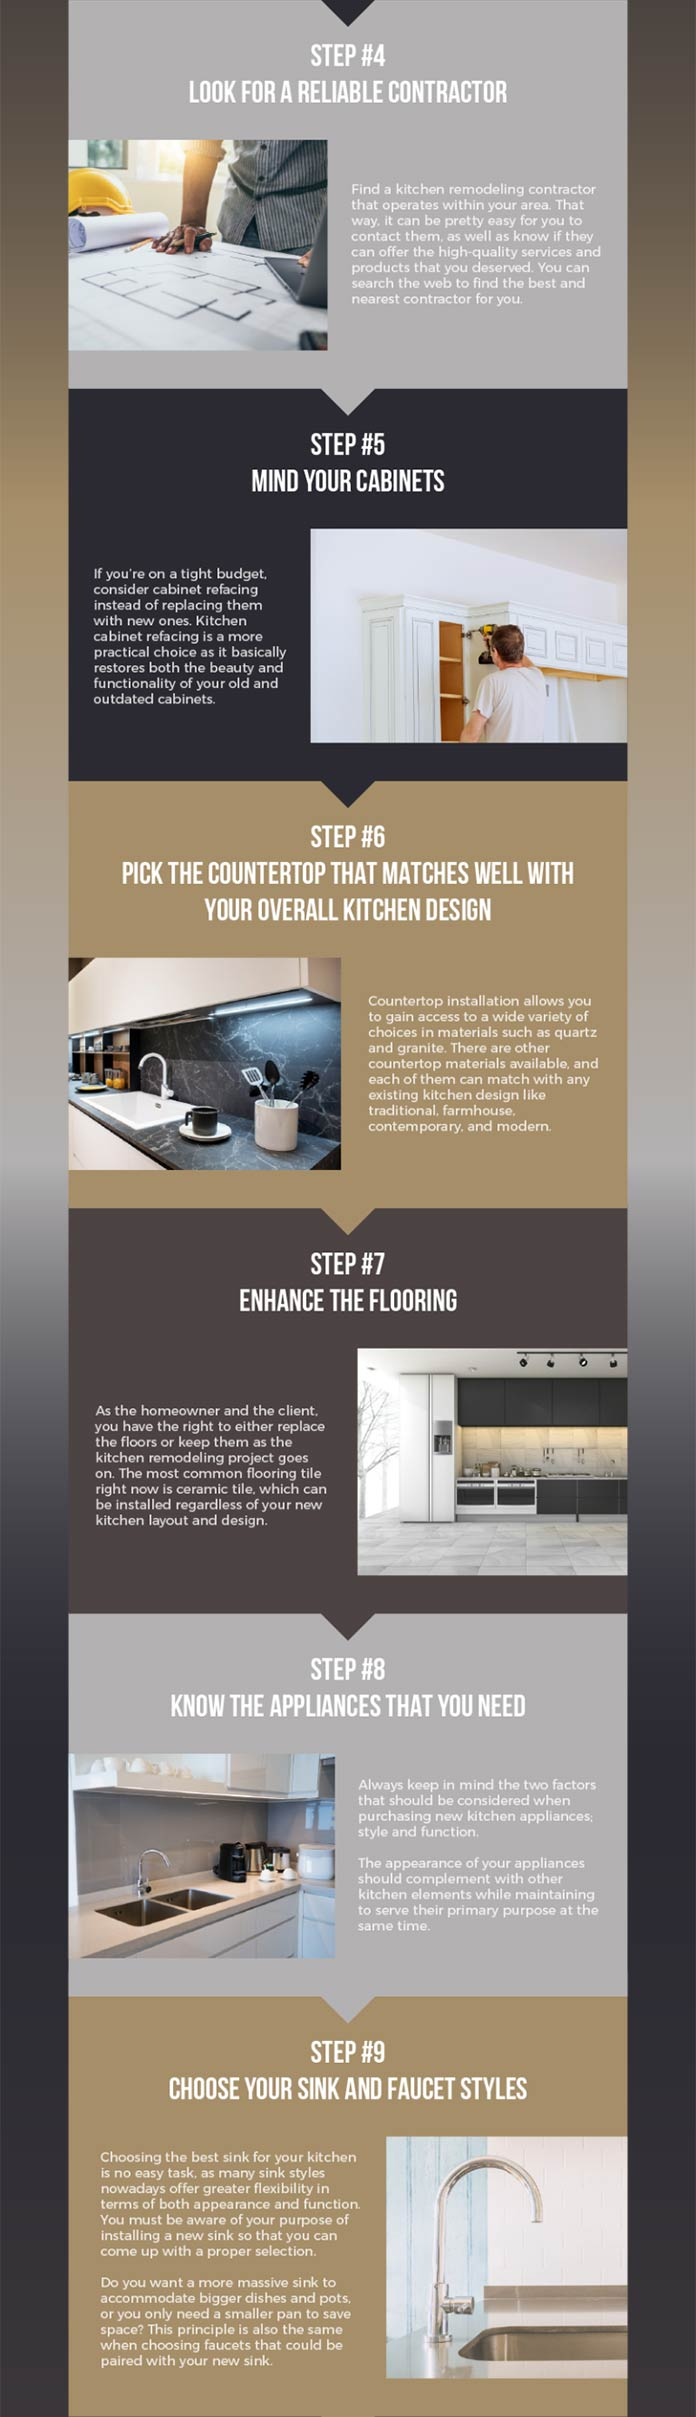 A 10-step process for a successful kitchen remodeling project - Infographic 11